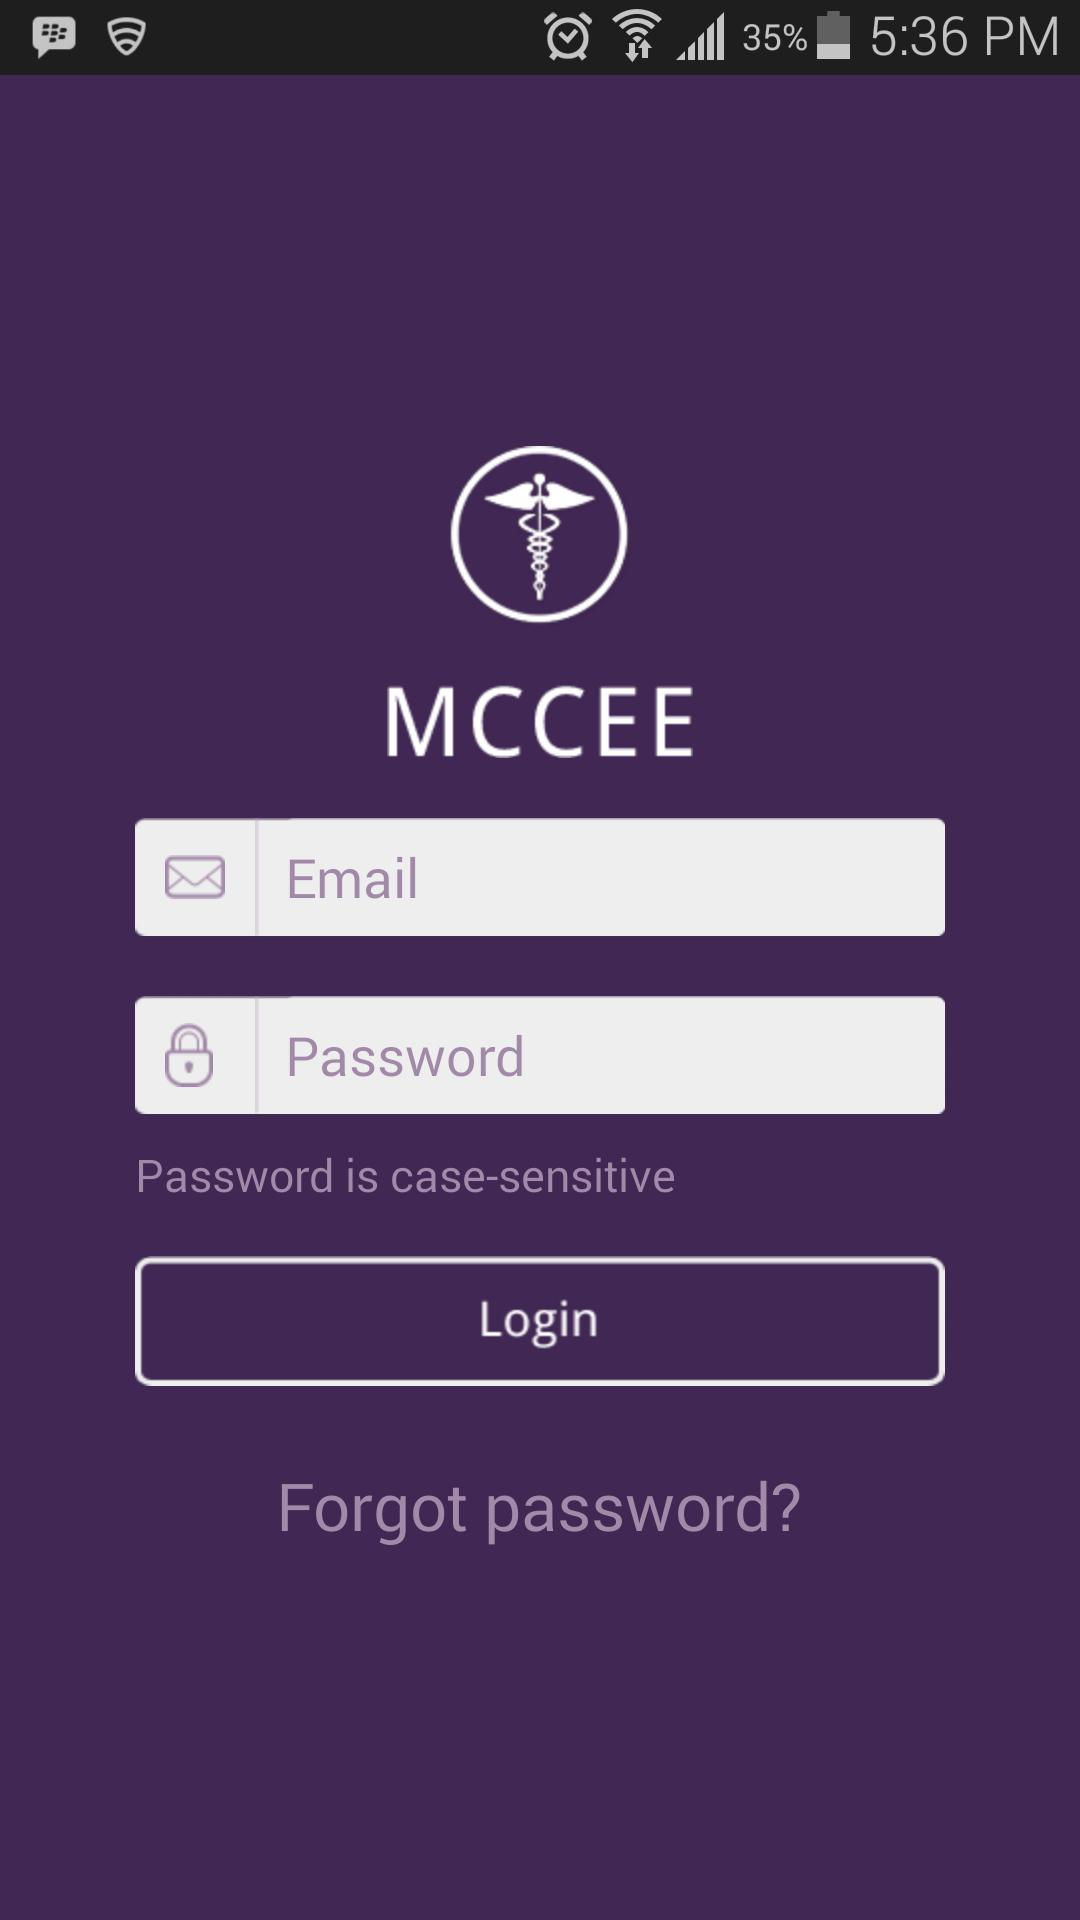 MCCEE for Android - APK Download